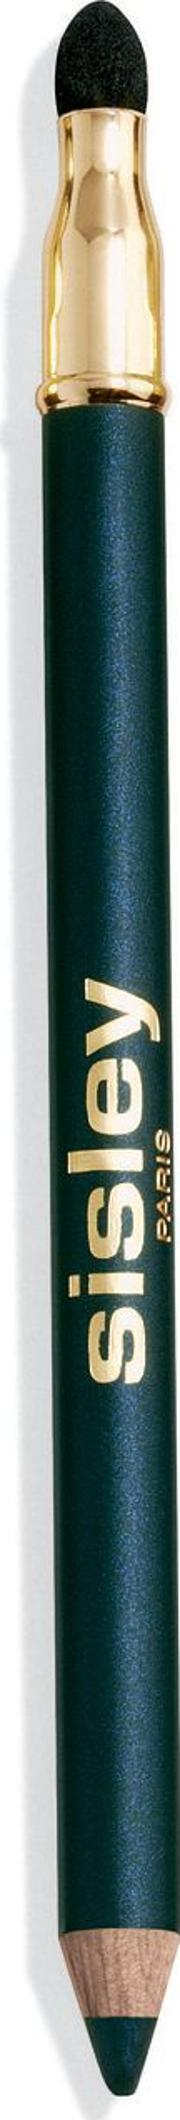 Sisley , Phyto Kohl Pencil 1.5g, Navy